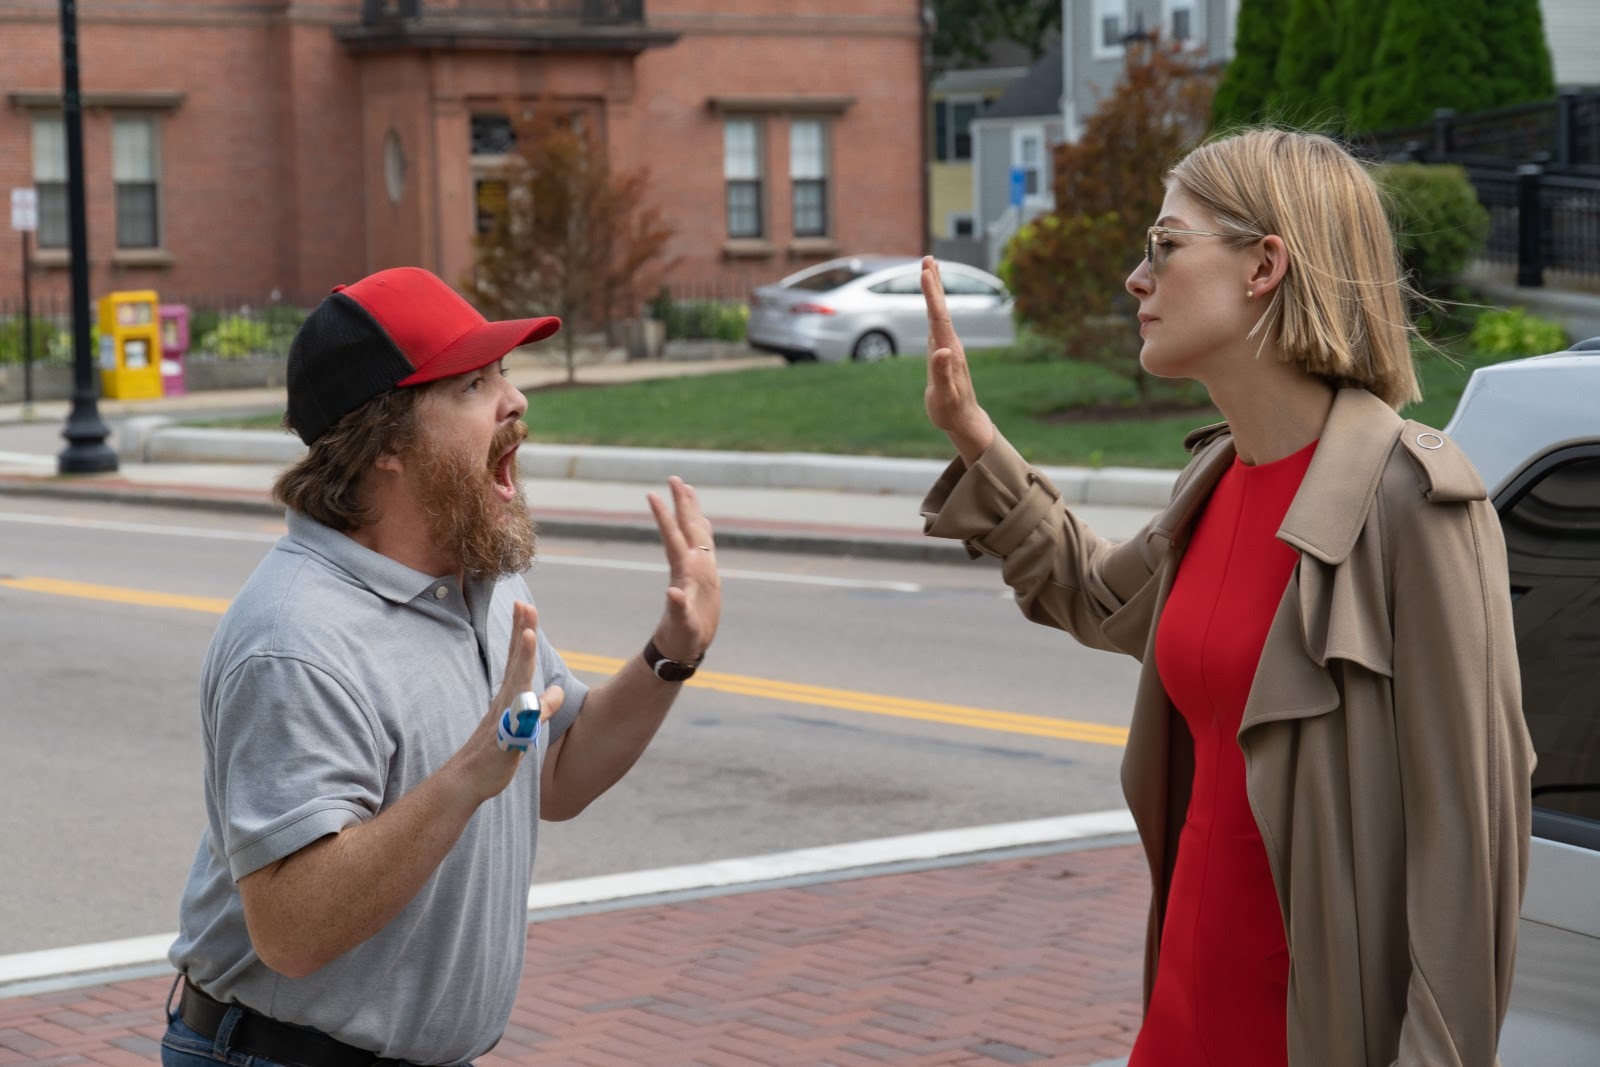 Macon Blair and Rosamund Pike in I Care a Lot (2020)